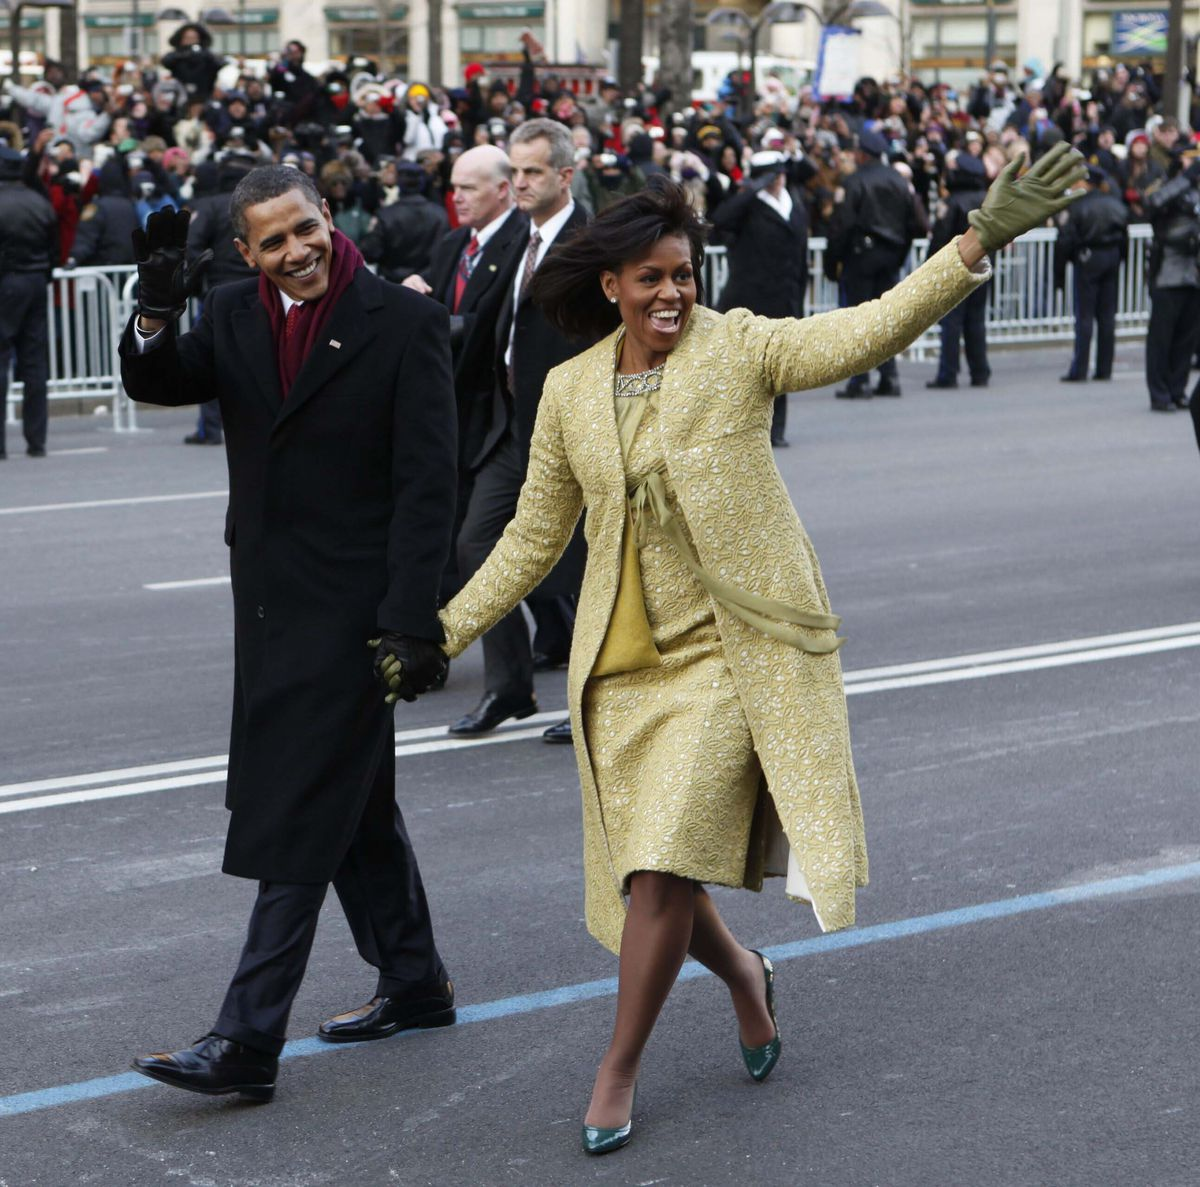 This Jan. 20, 2009, file photo shows President Barack Obama and first lady Michelle Obama, wearing a lemongrass-colored sheath dress and matching overcoat designed by Isabel Toledo as they walk the inaugural parade route in Washington, D.C.